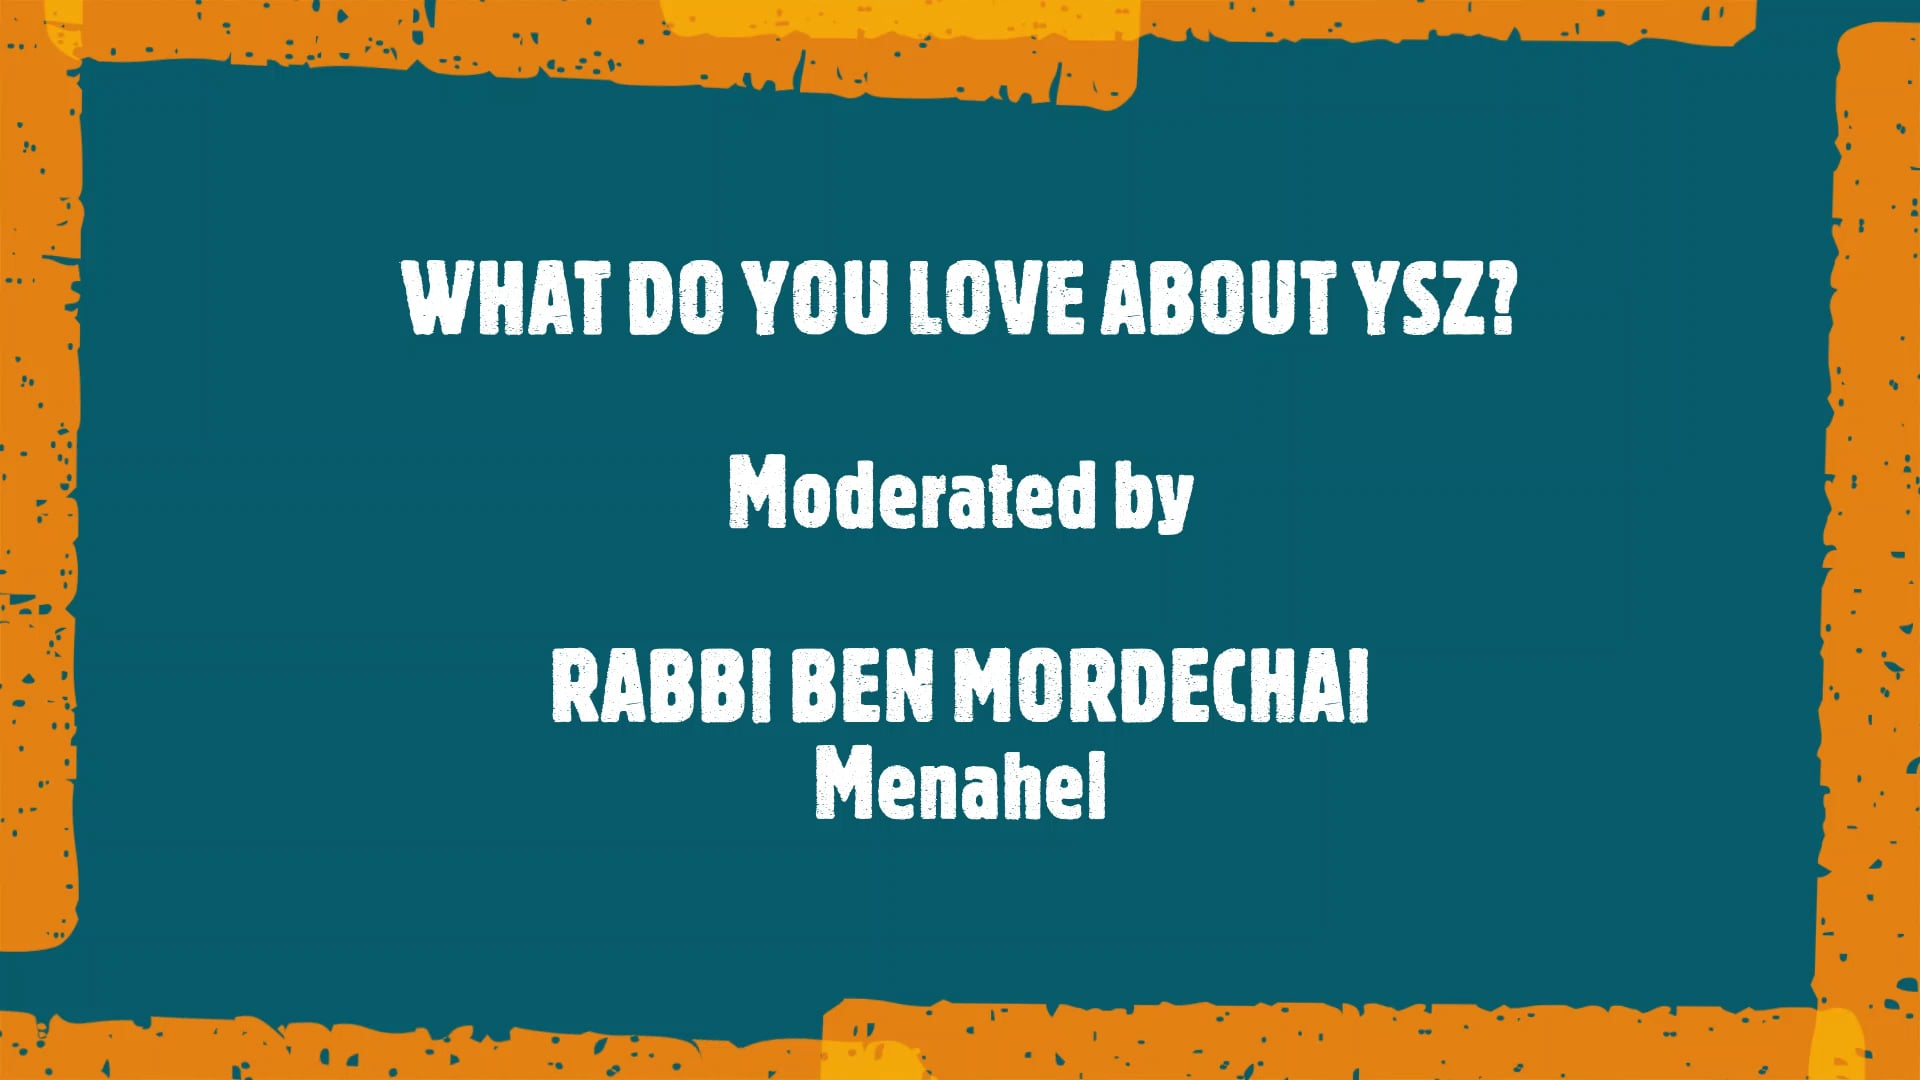 What do you love about YSZ?